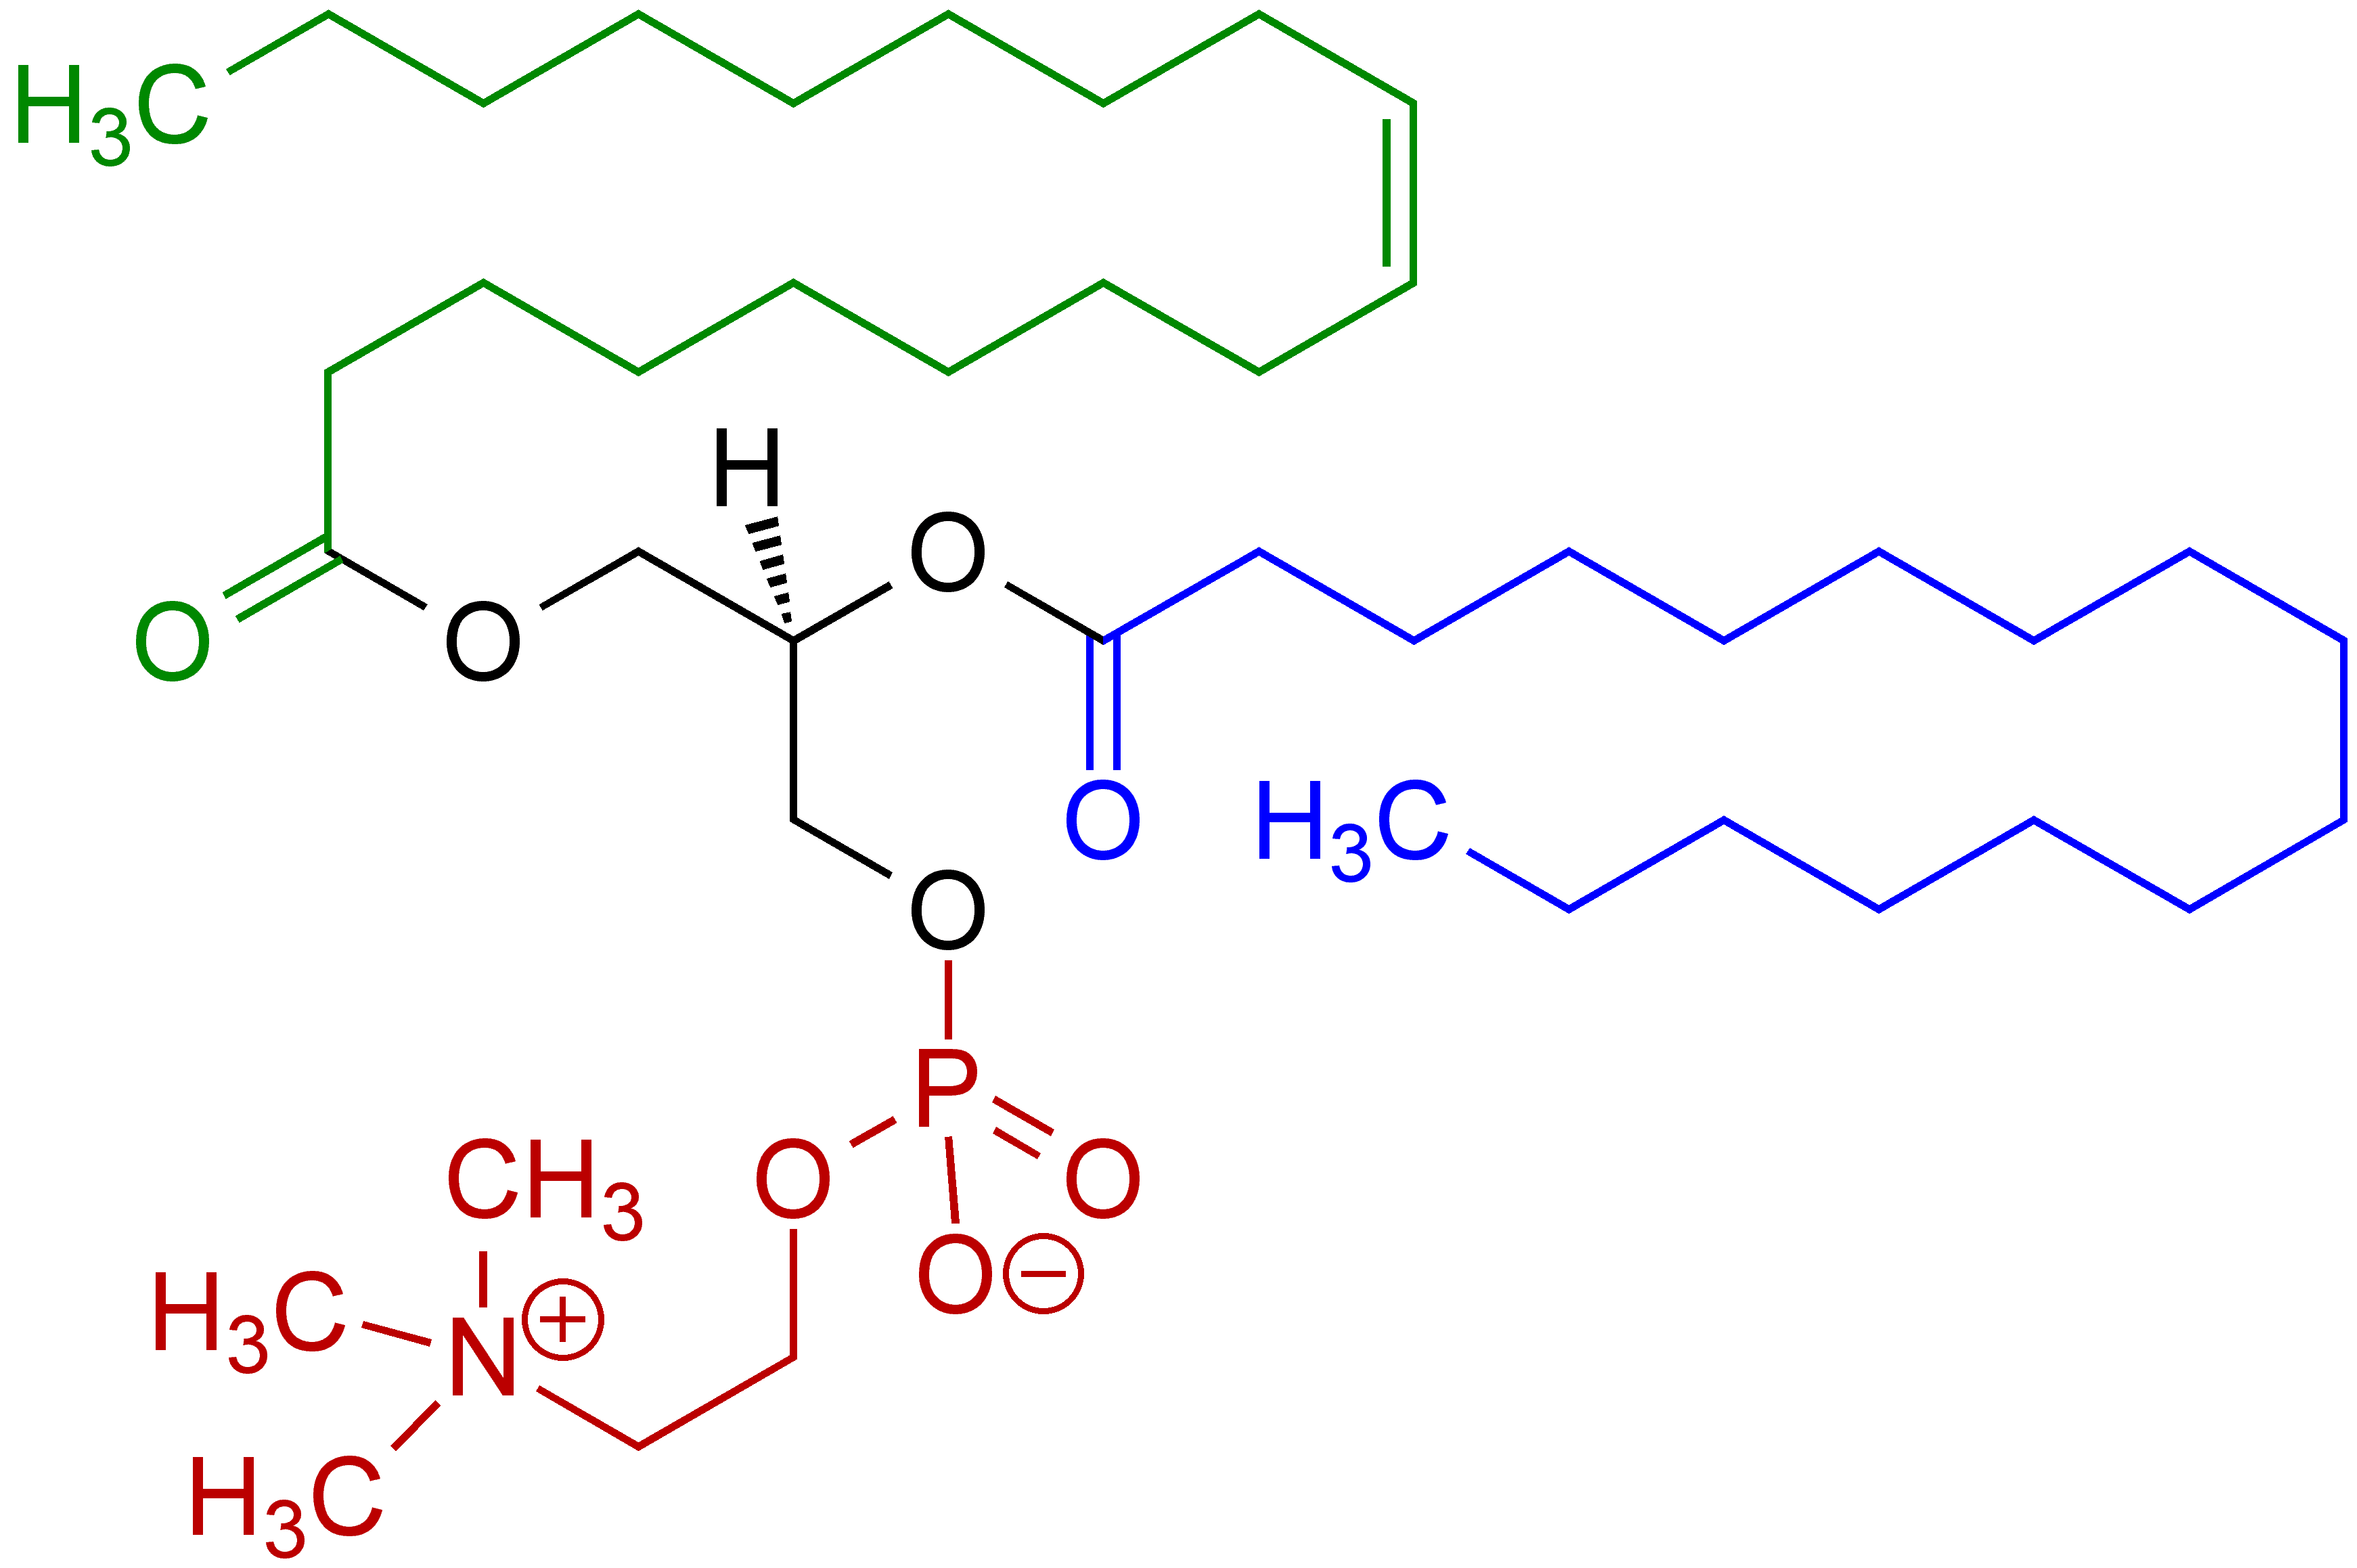 chemical structure of Phosphatidylcholine